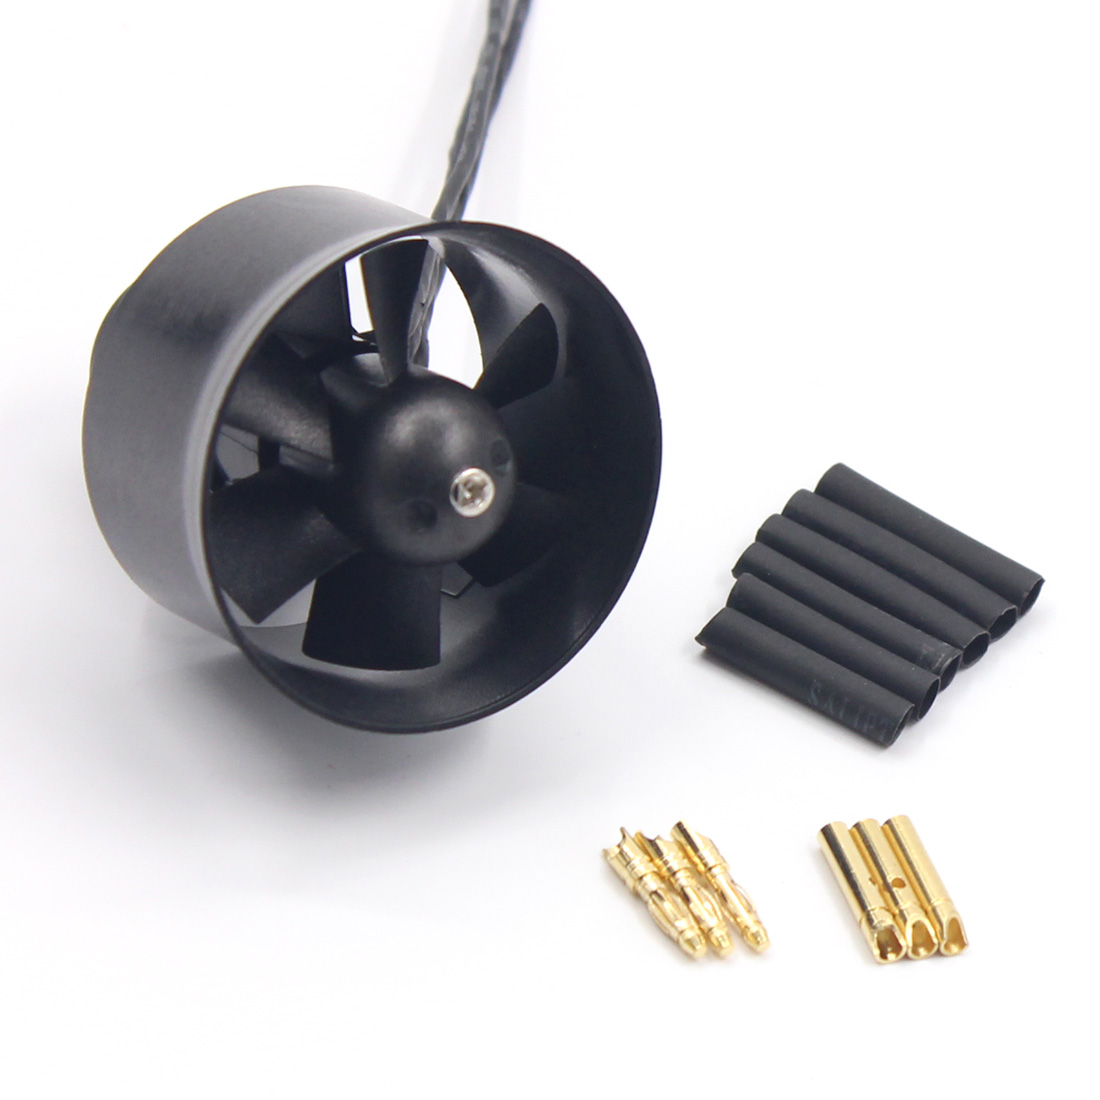 QX-Motor 30mm 6 Paddle Ducted Fan EDF QF1611 5000KV 6000KV 7000KV Brushless Motor For DIY RC Airplanes Model Accessories Parts image